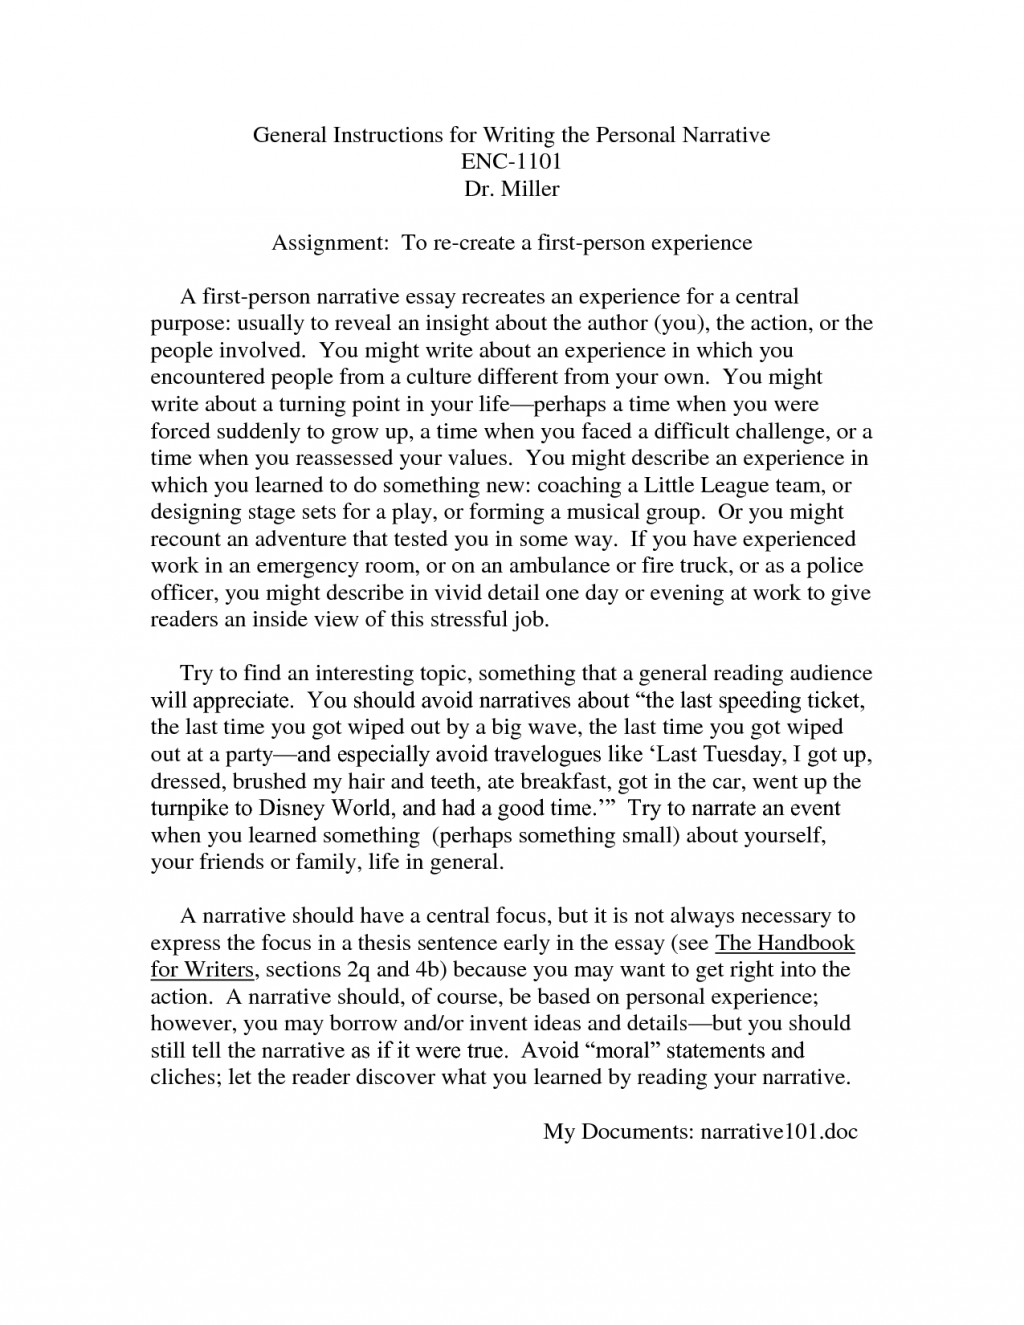 009 Zgup350miv Essay Example Of Imposing A Narrative About Family Vacation Introduction Large